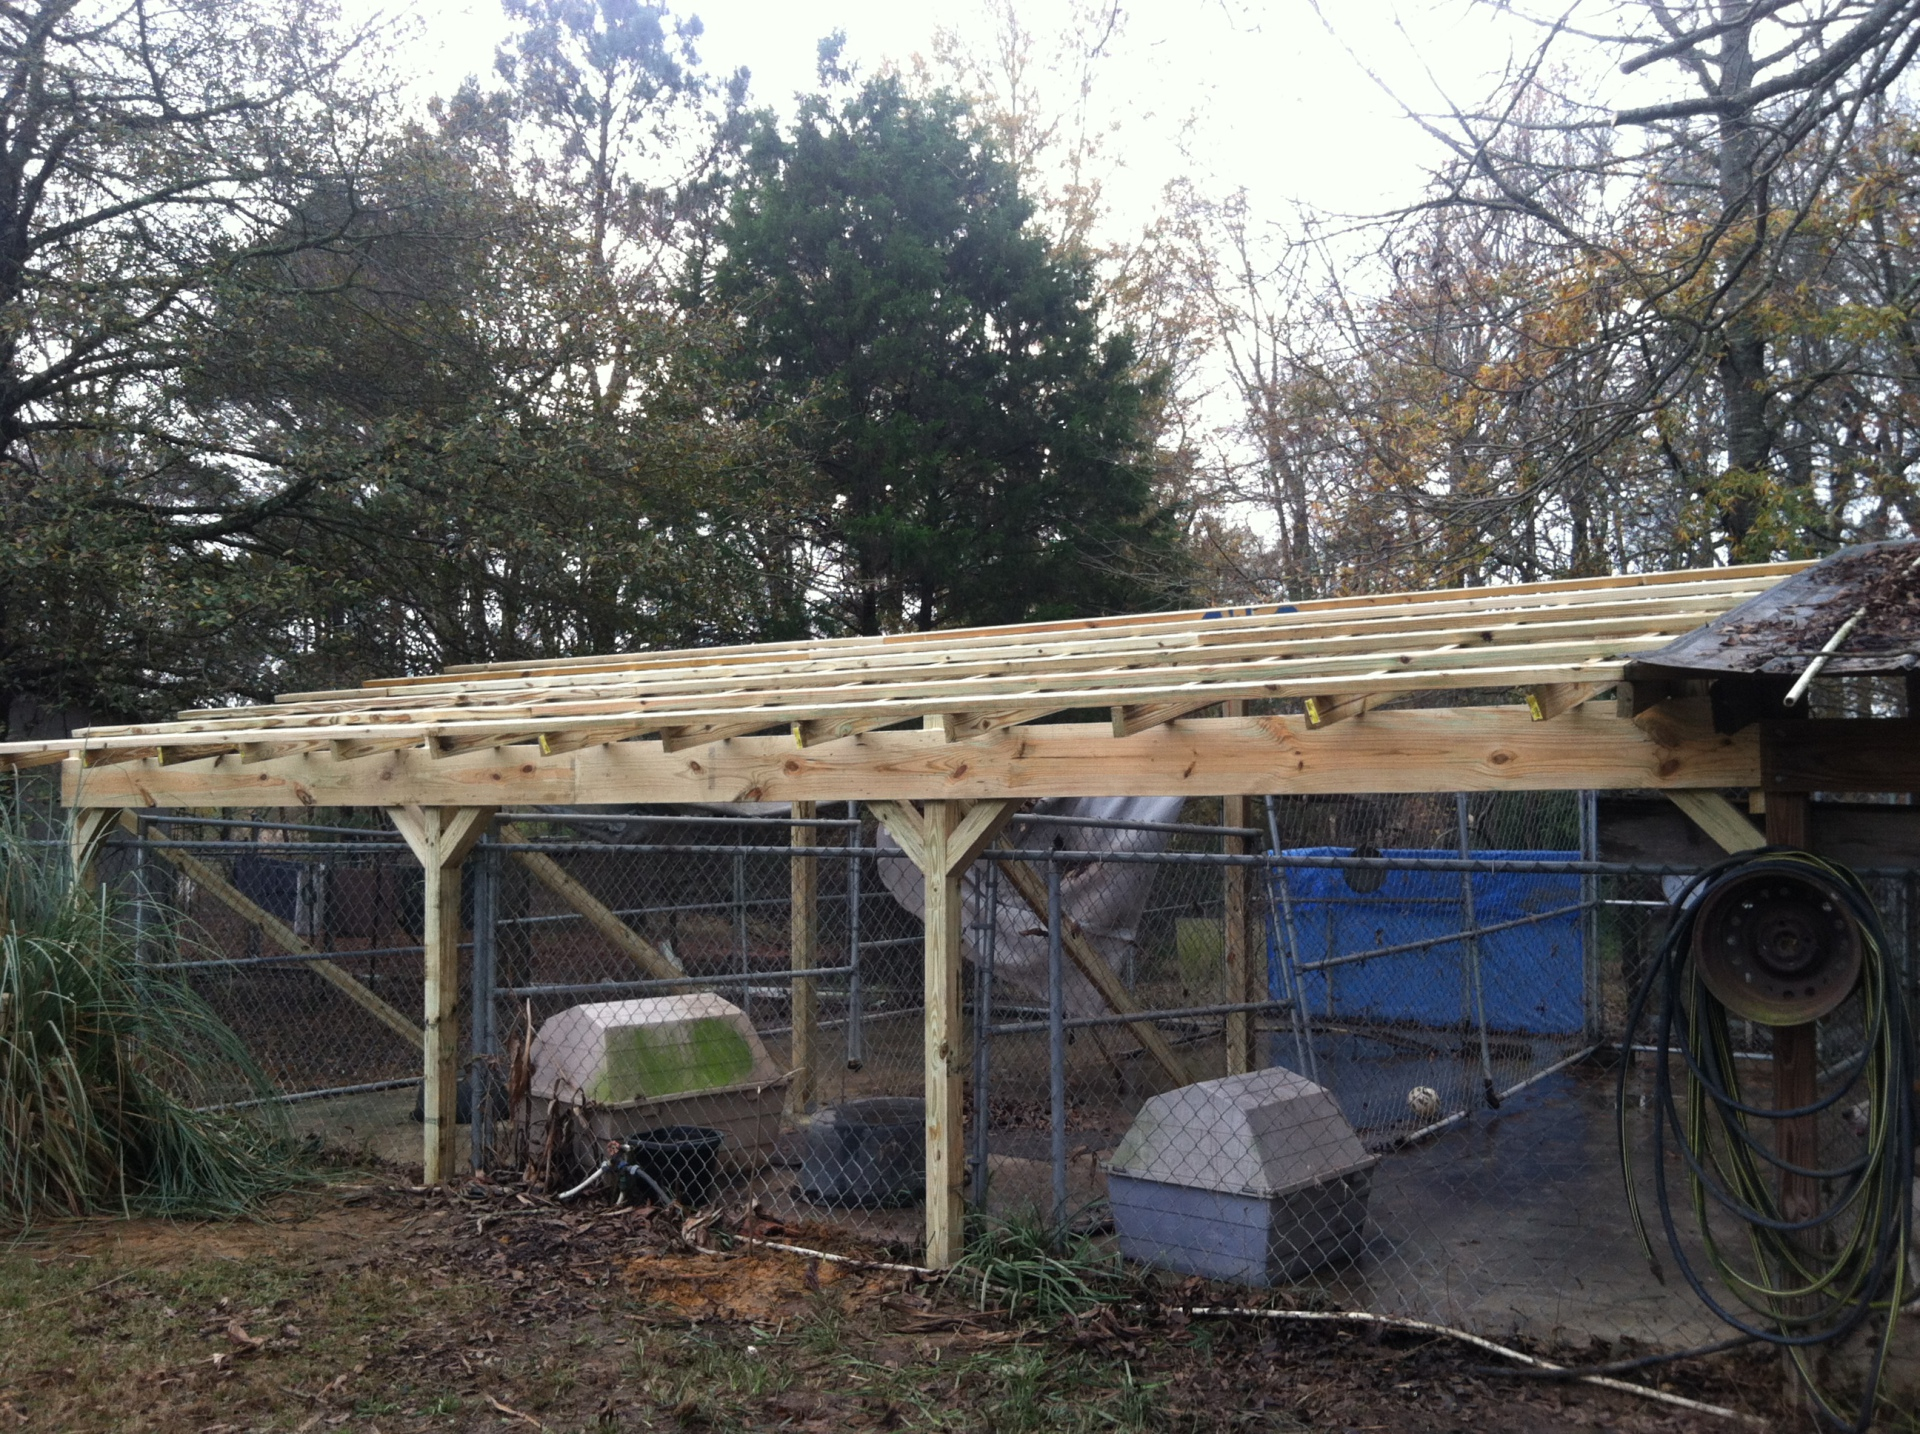 A Roof over a Kennel